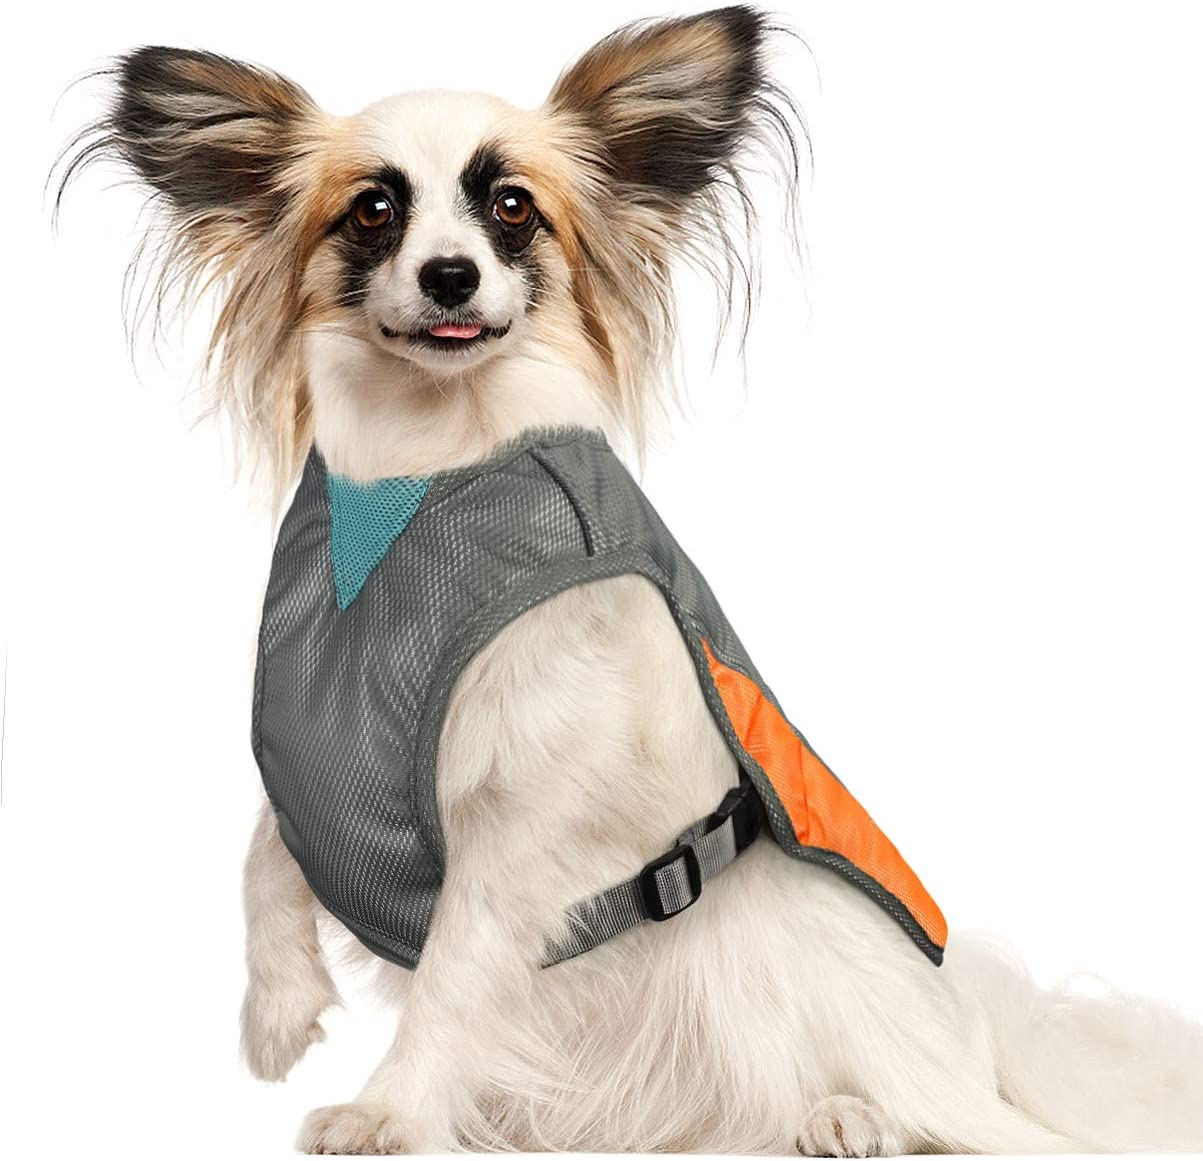 POPETPOP Dog Cooling Vest - Reflective Dog Cooling Coat with Adjustable Side Straps, Pet Cooler Jacket for Small, Medium Dog